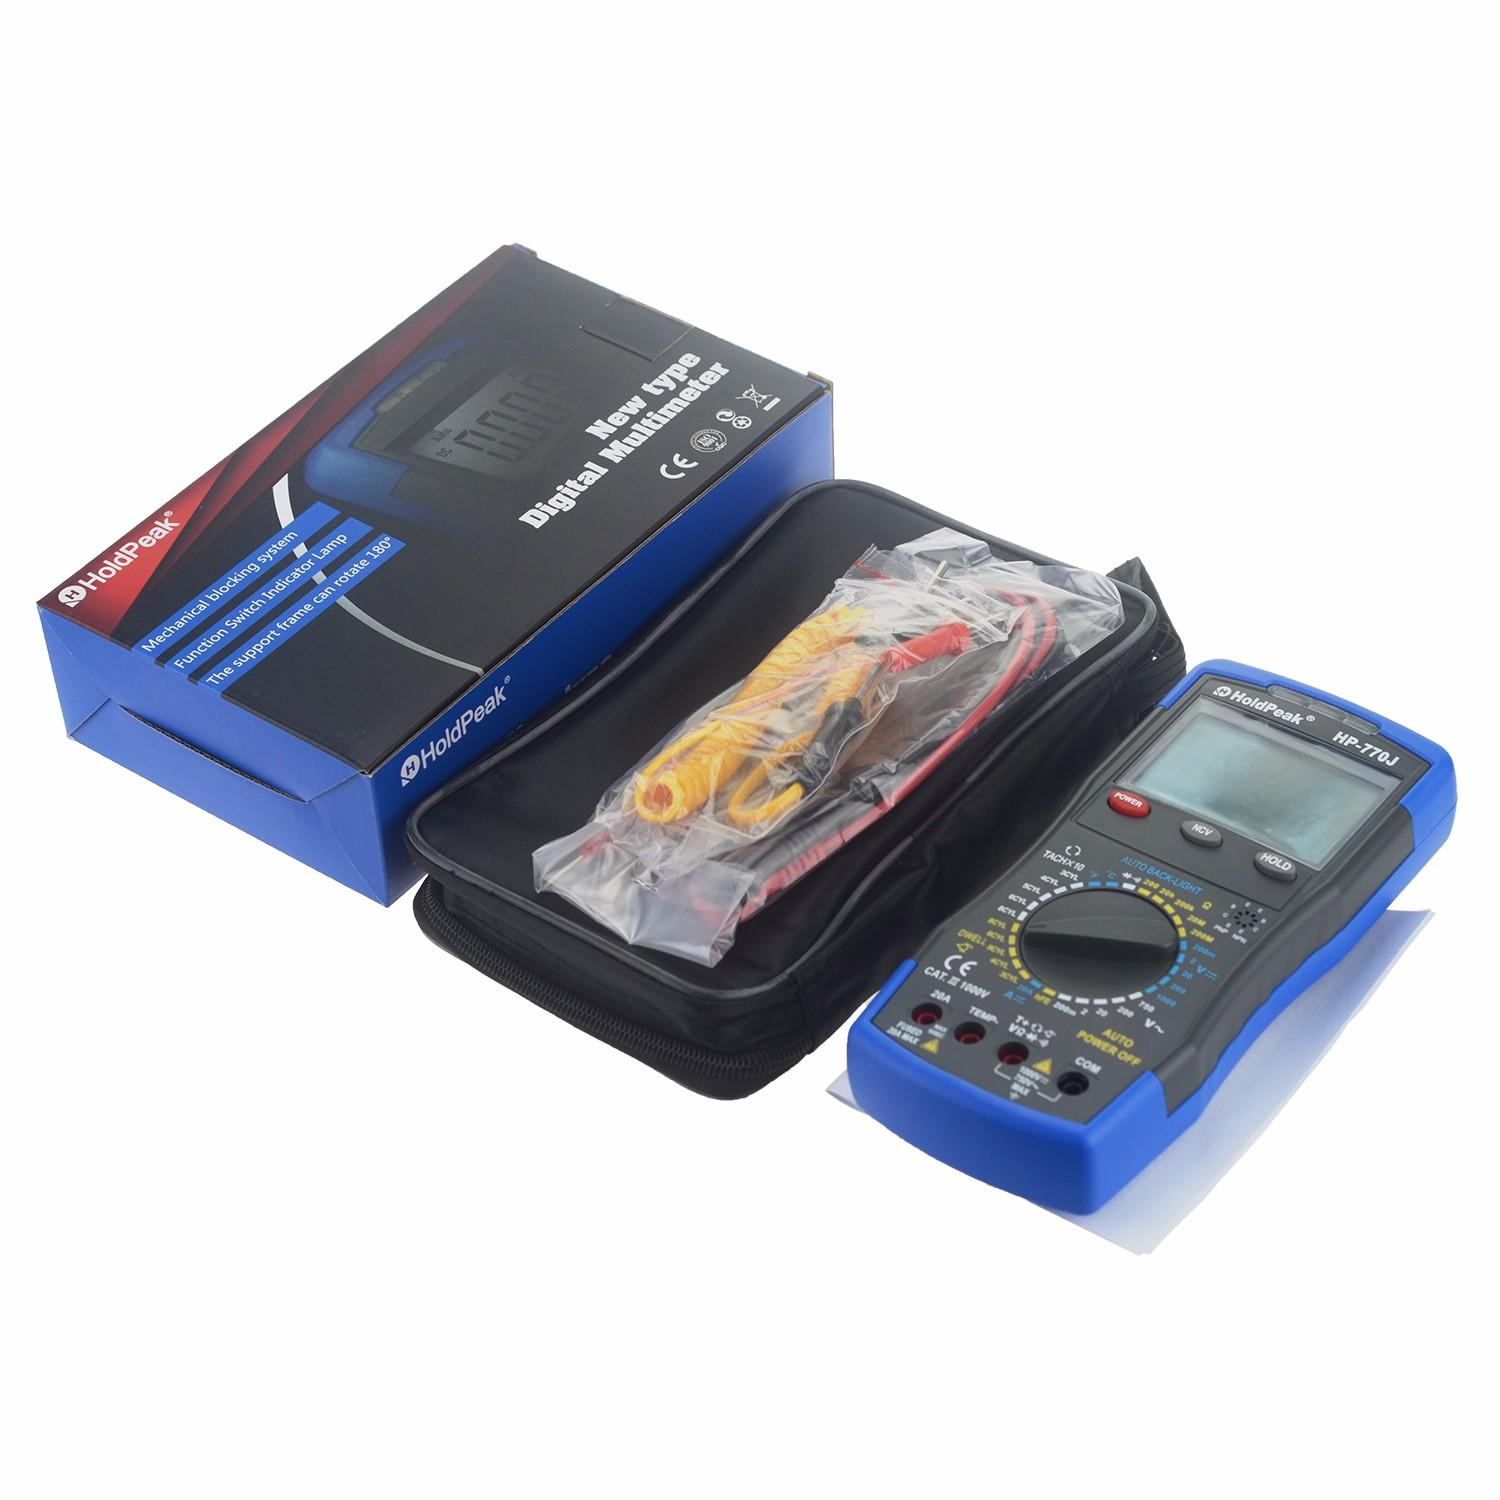 portable engine scanner oem-measuring instruments supplier, digital measurement instruments,electrical measuring instruments oem-HoldPeak